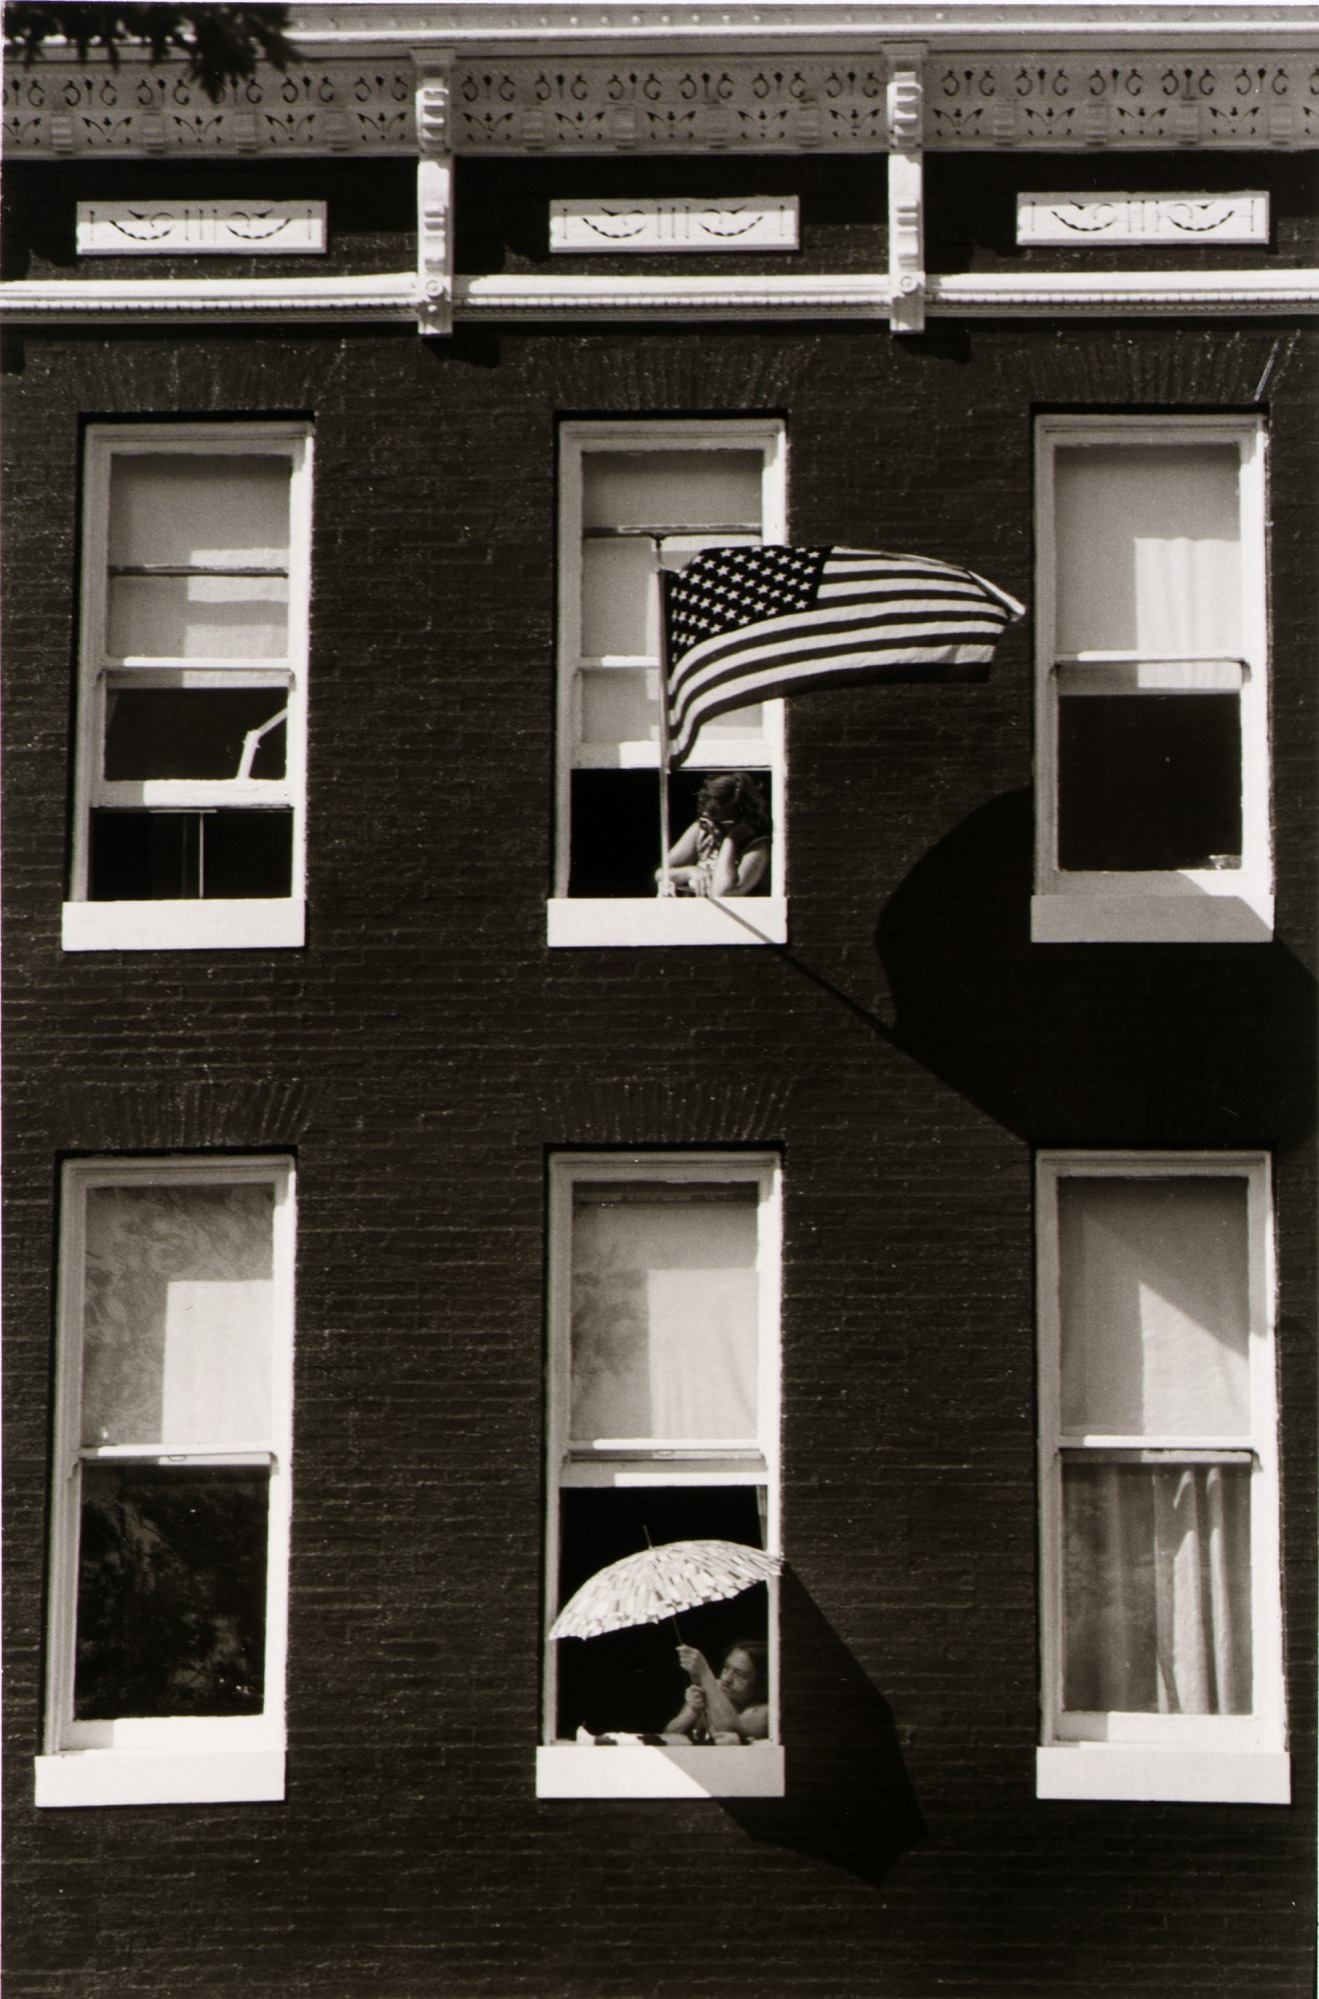 Apartment building with an American flag flown out of a window